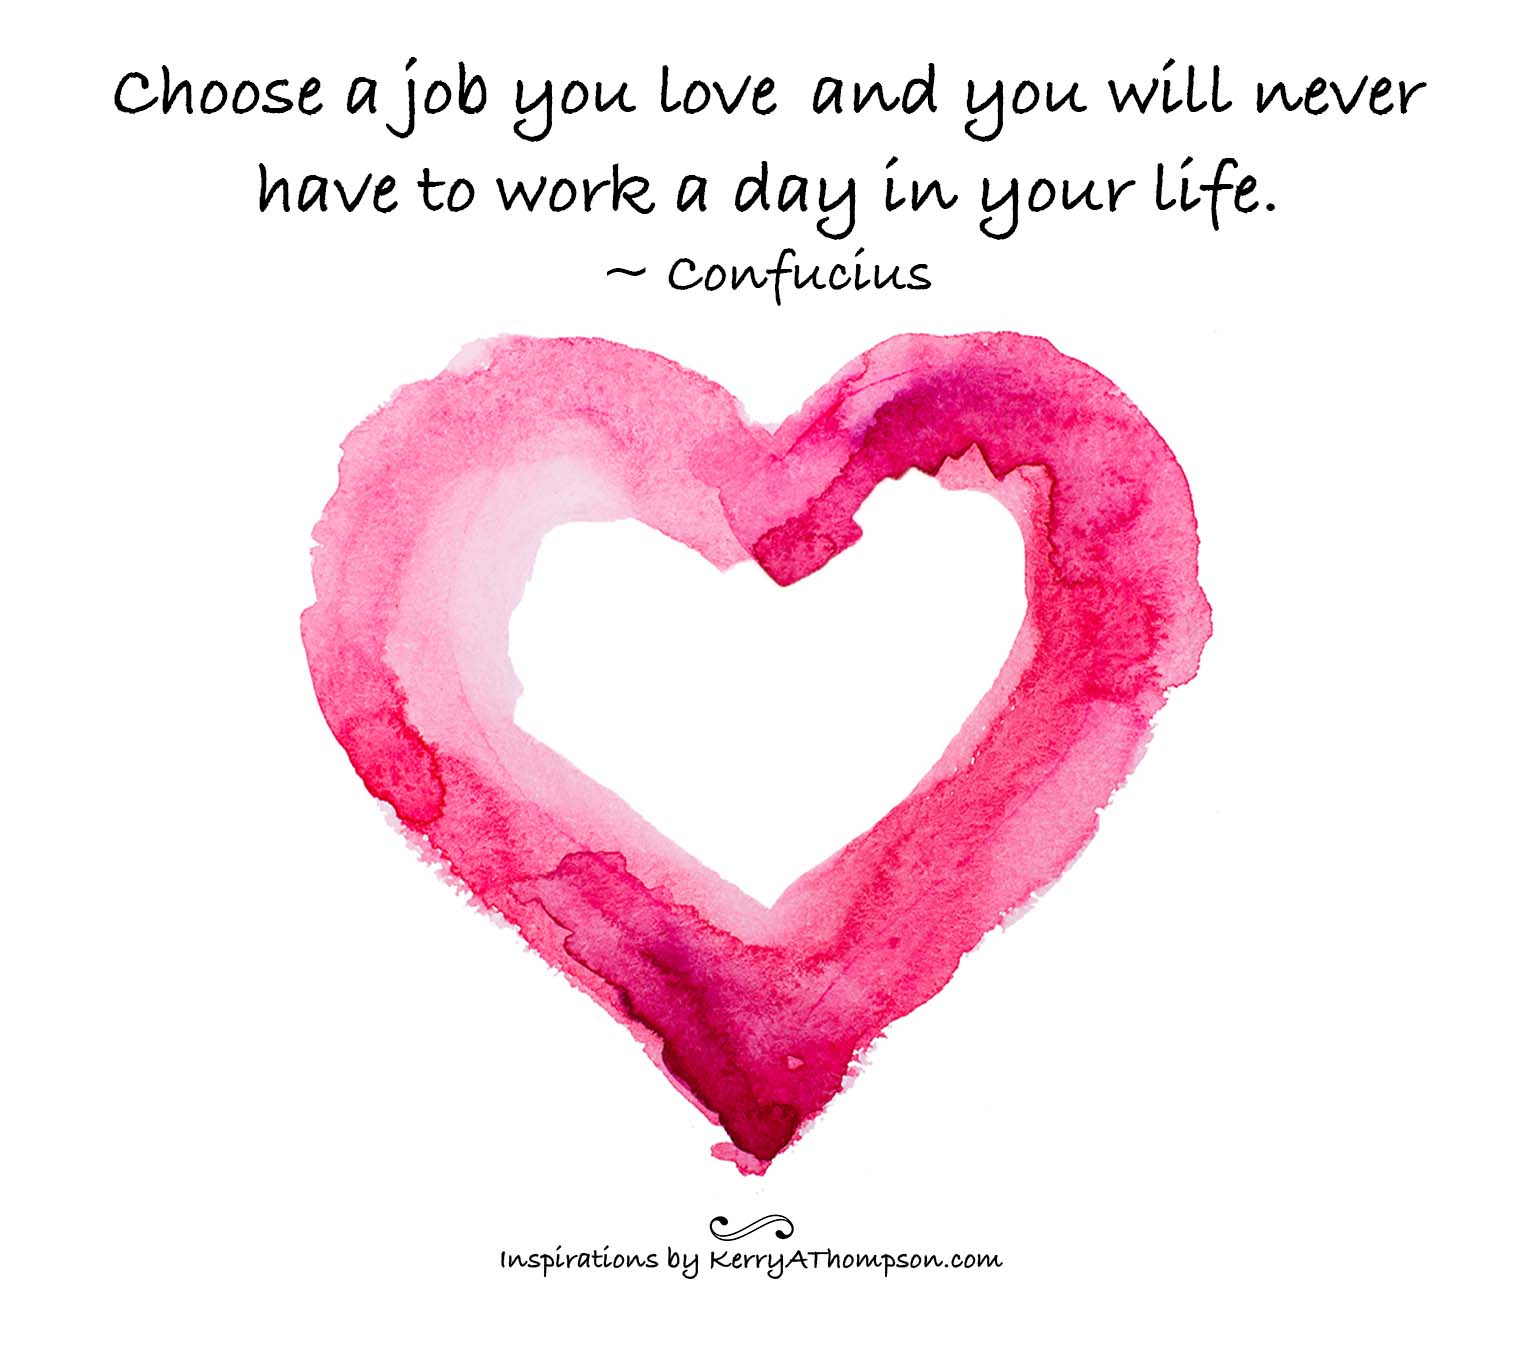 KerryAThompson.com Blog: Choose a job you love